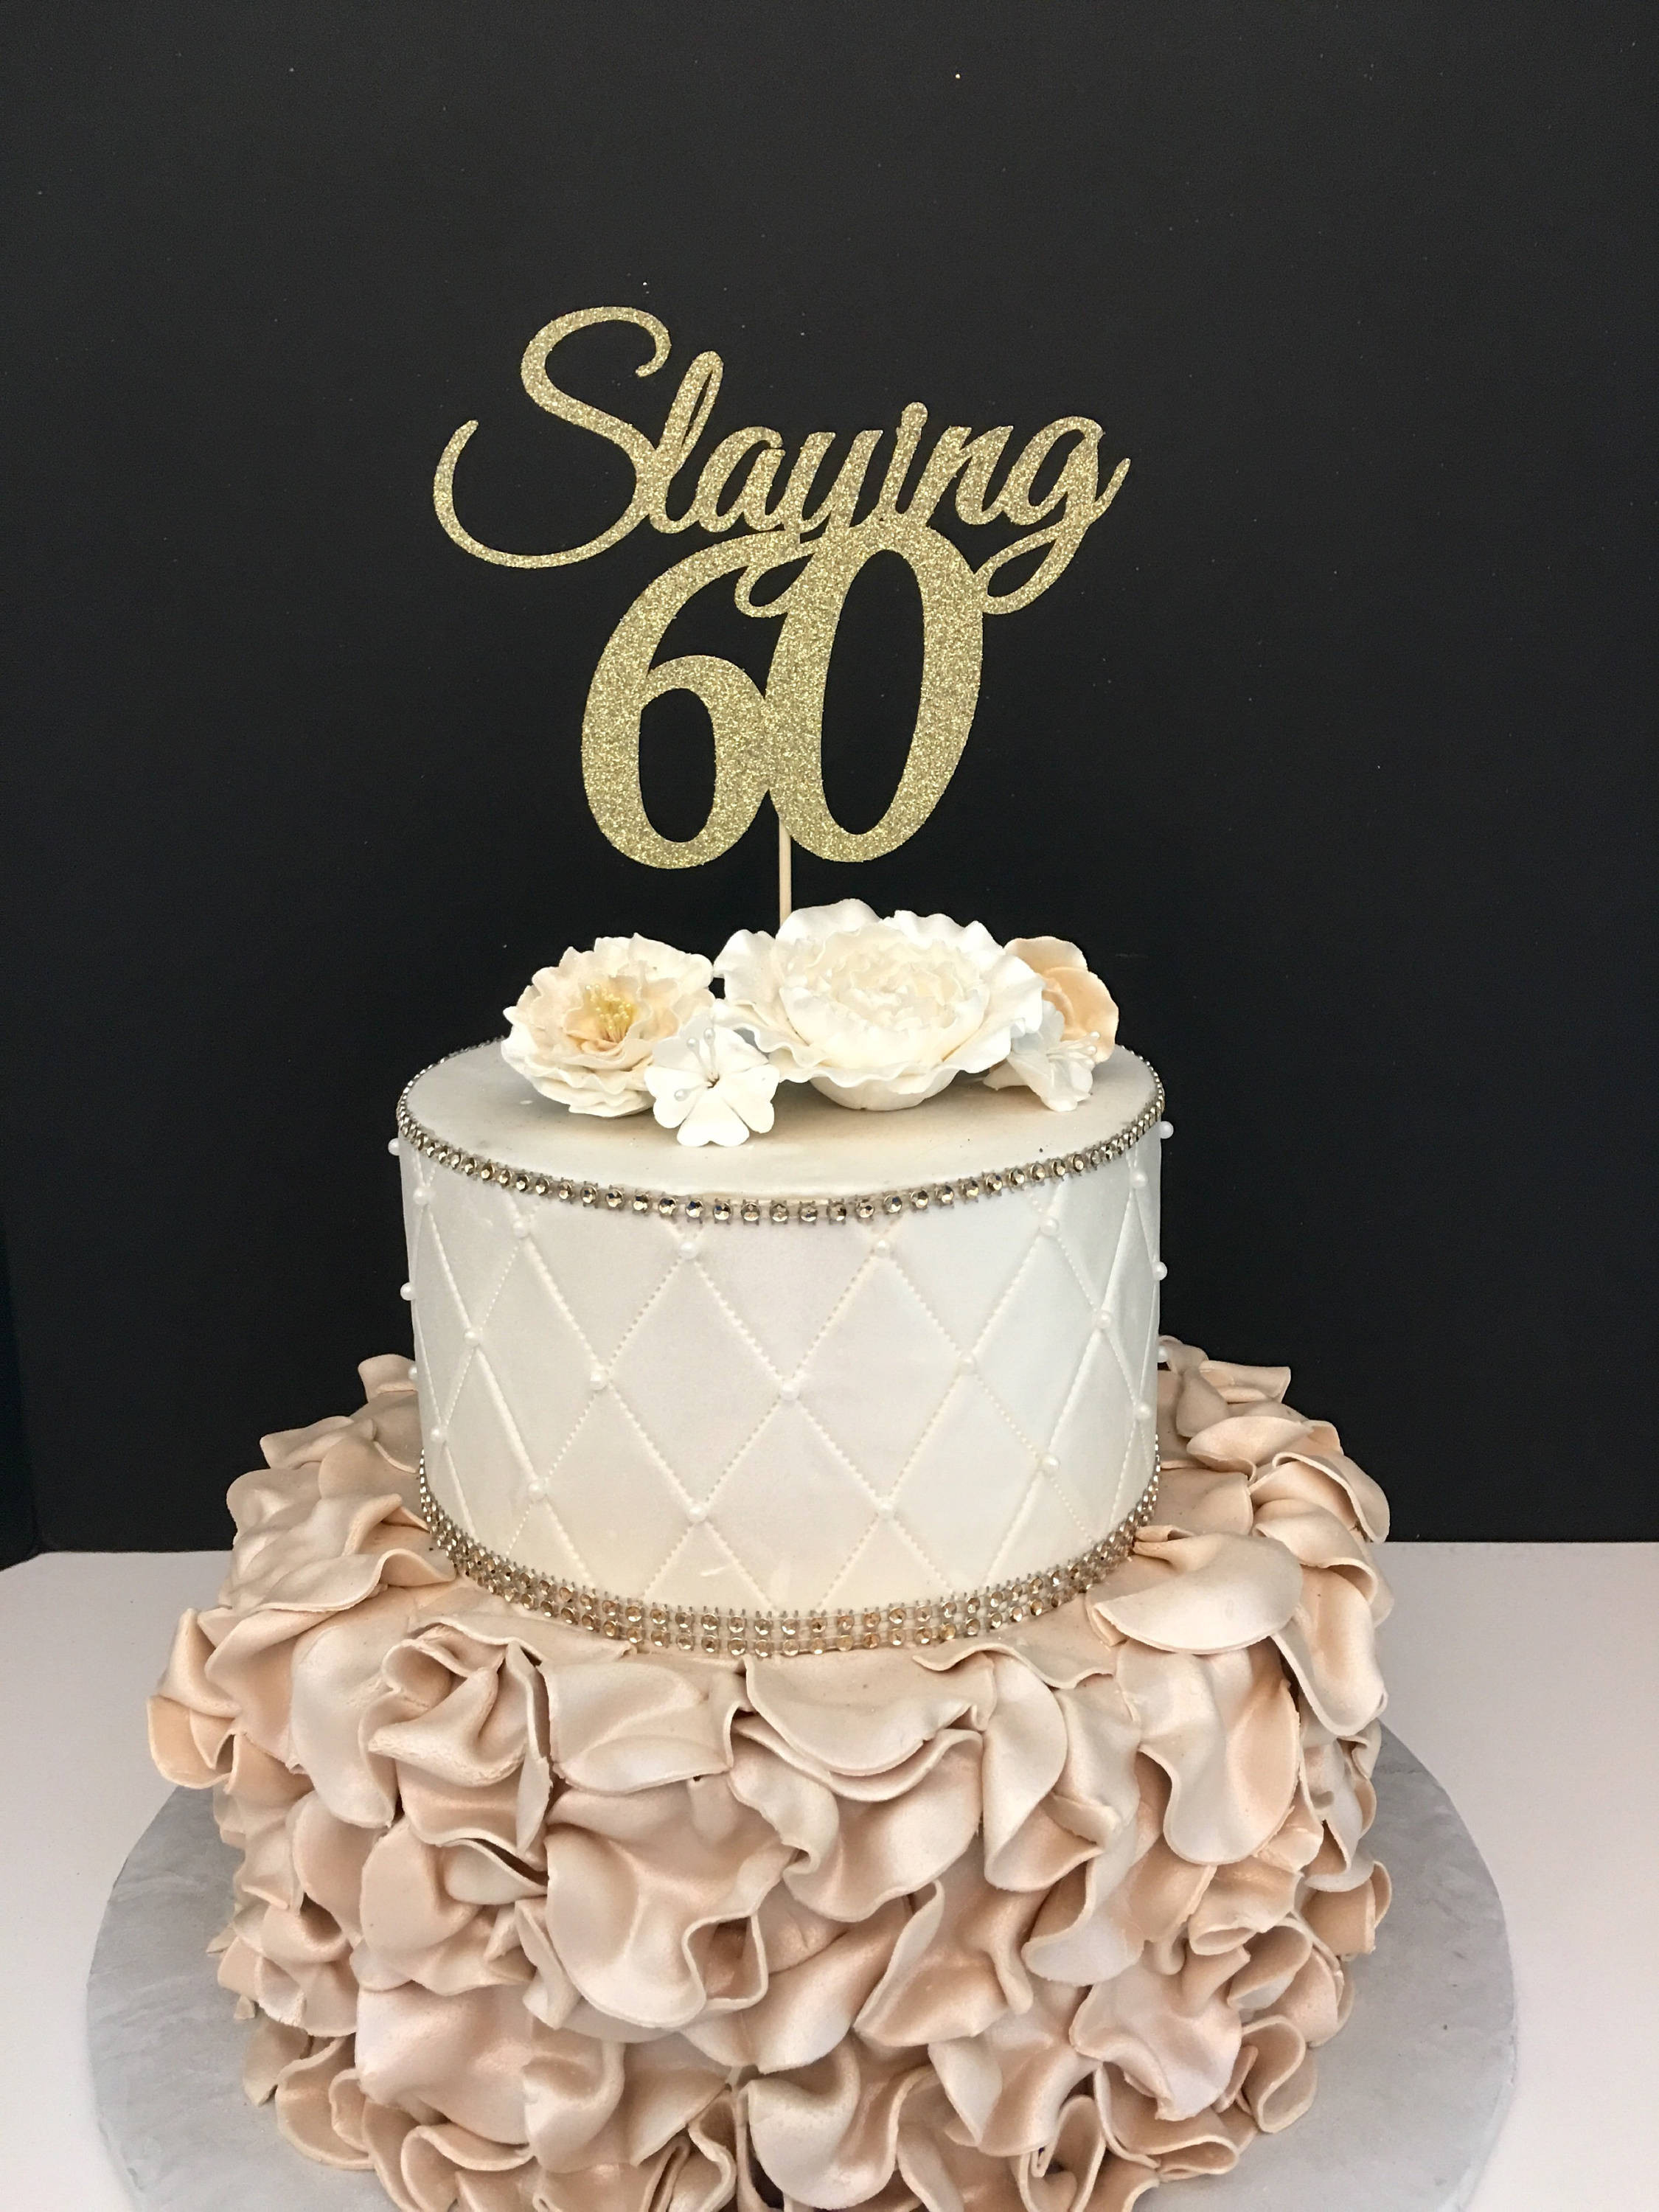 Best ideas about 60th Birthday Cake . Save or Pin ANY NUMBER Gold Glitter 60th Birthday Cake Topper Slaying 60 Now.